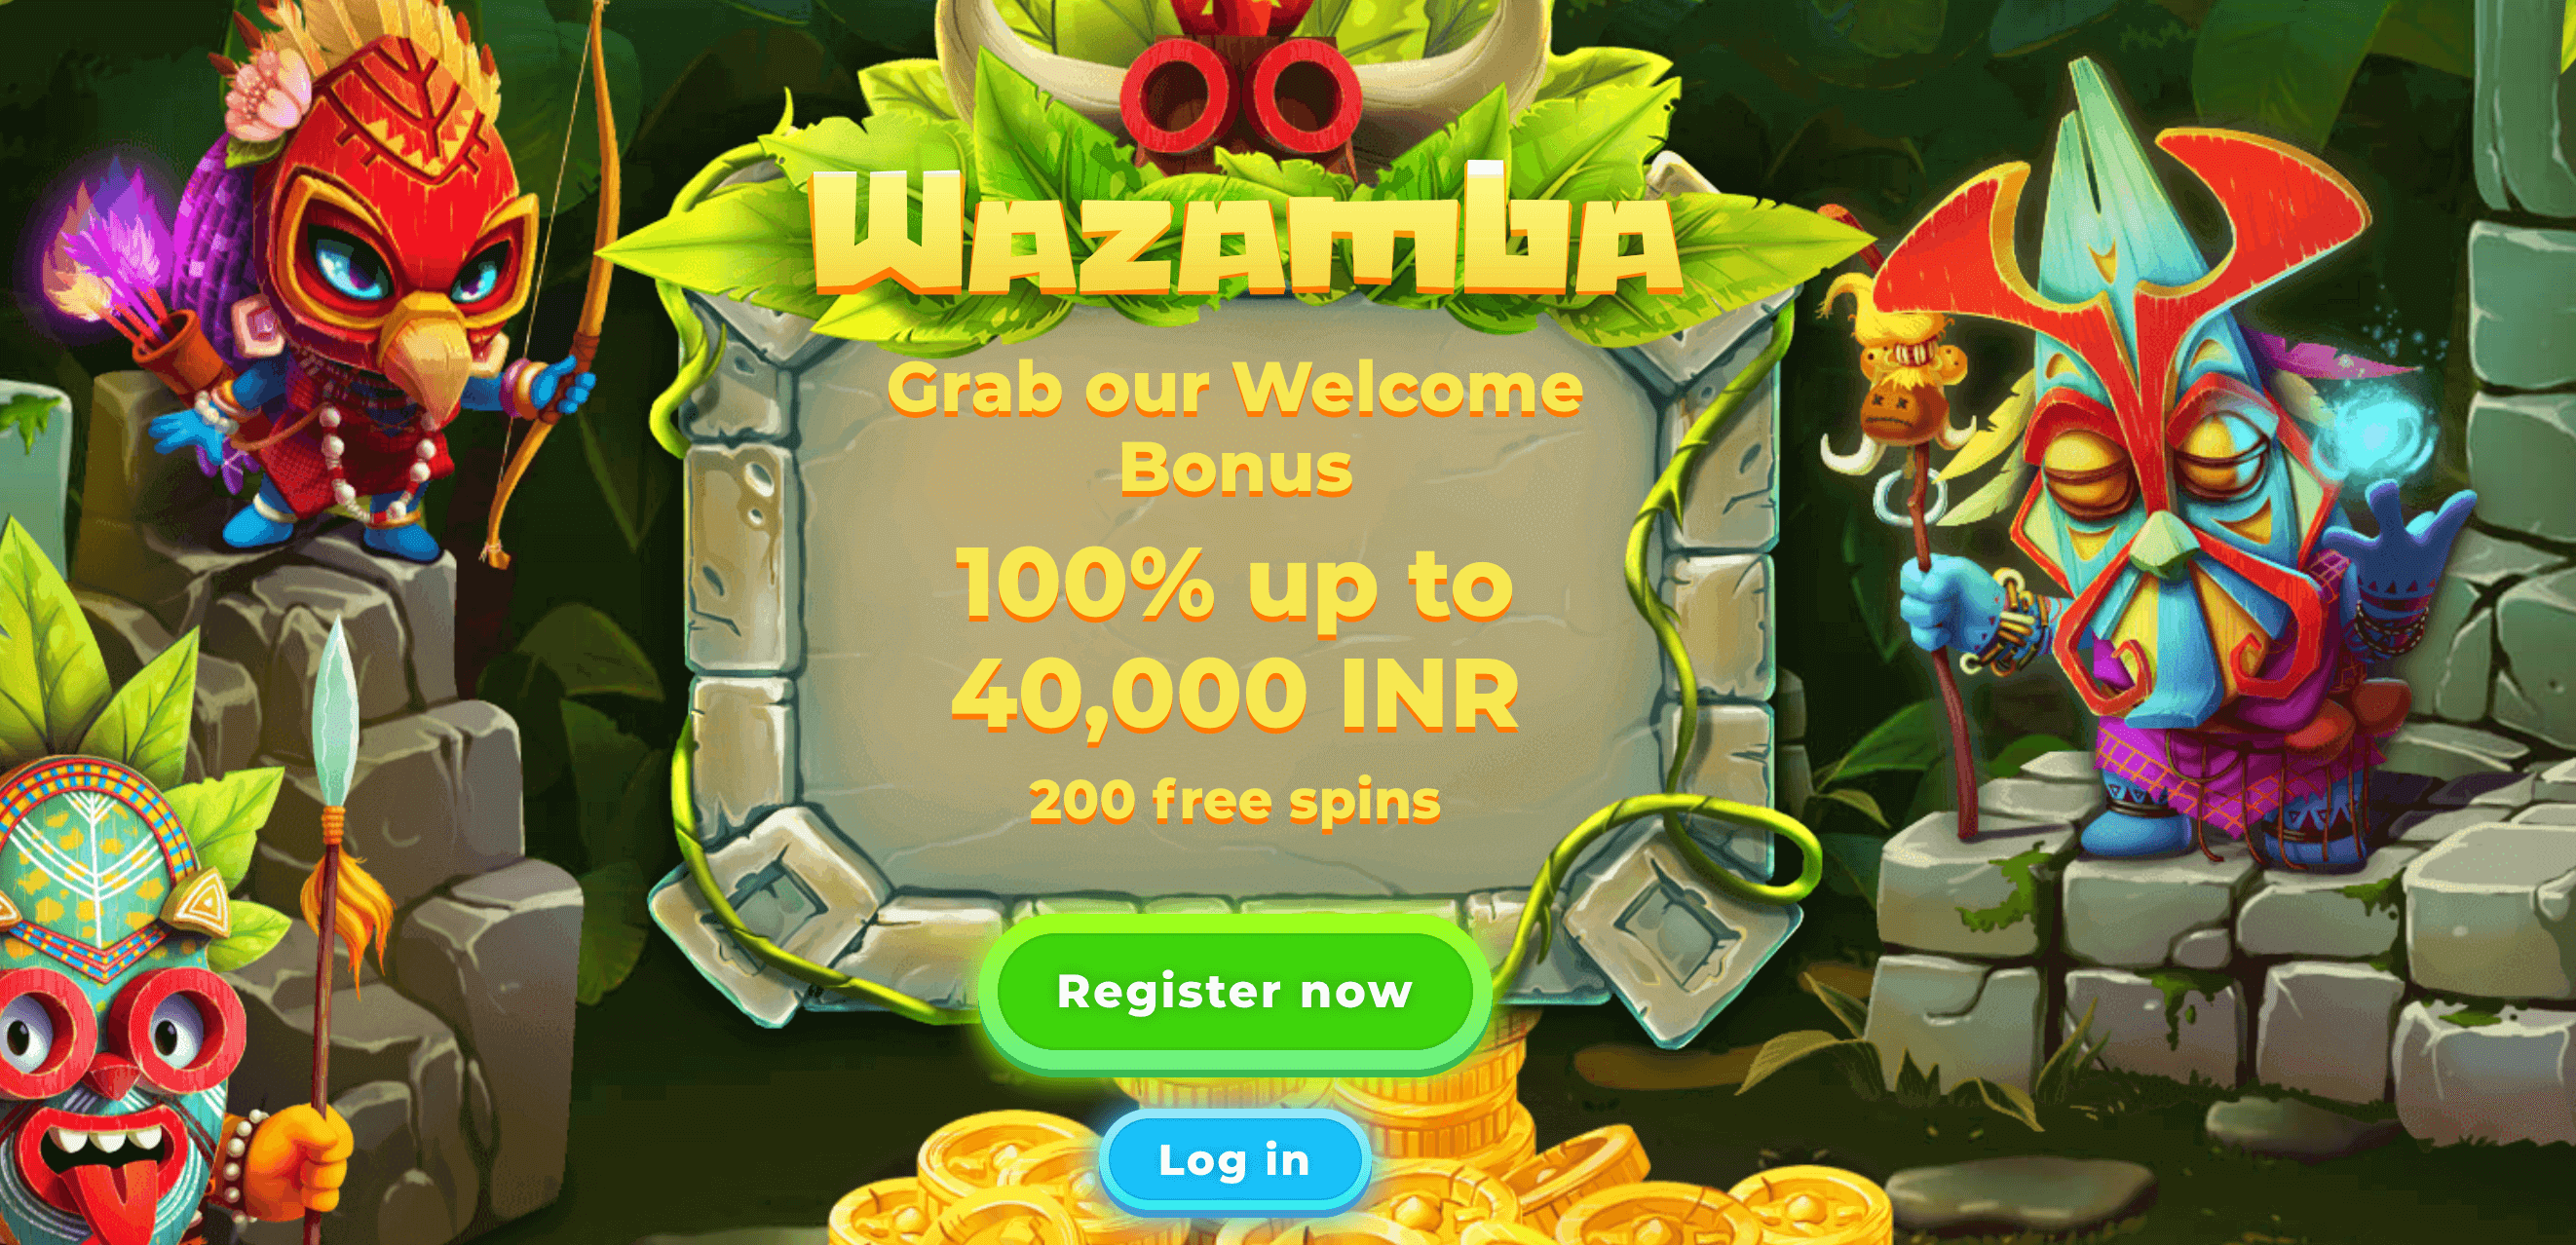 wazamba casino welcome bonus